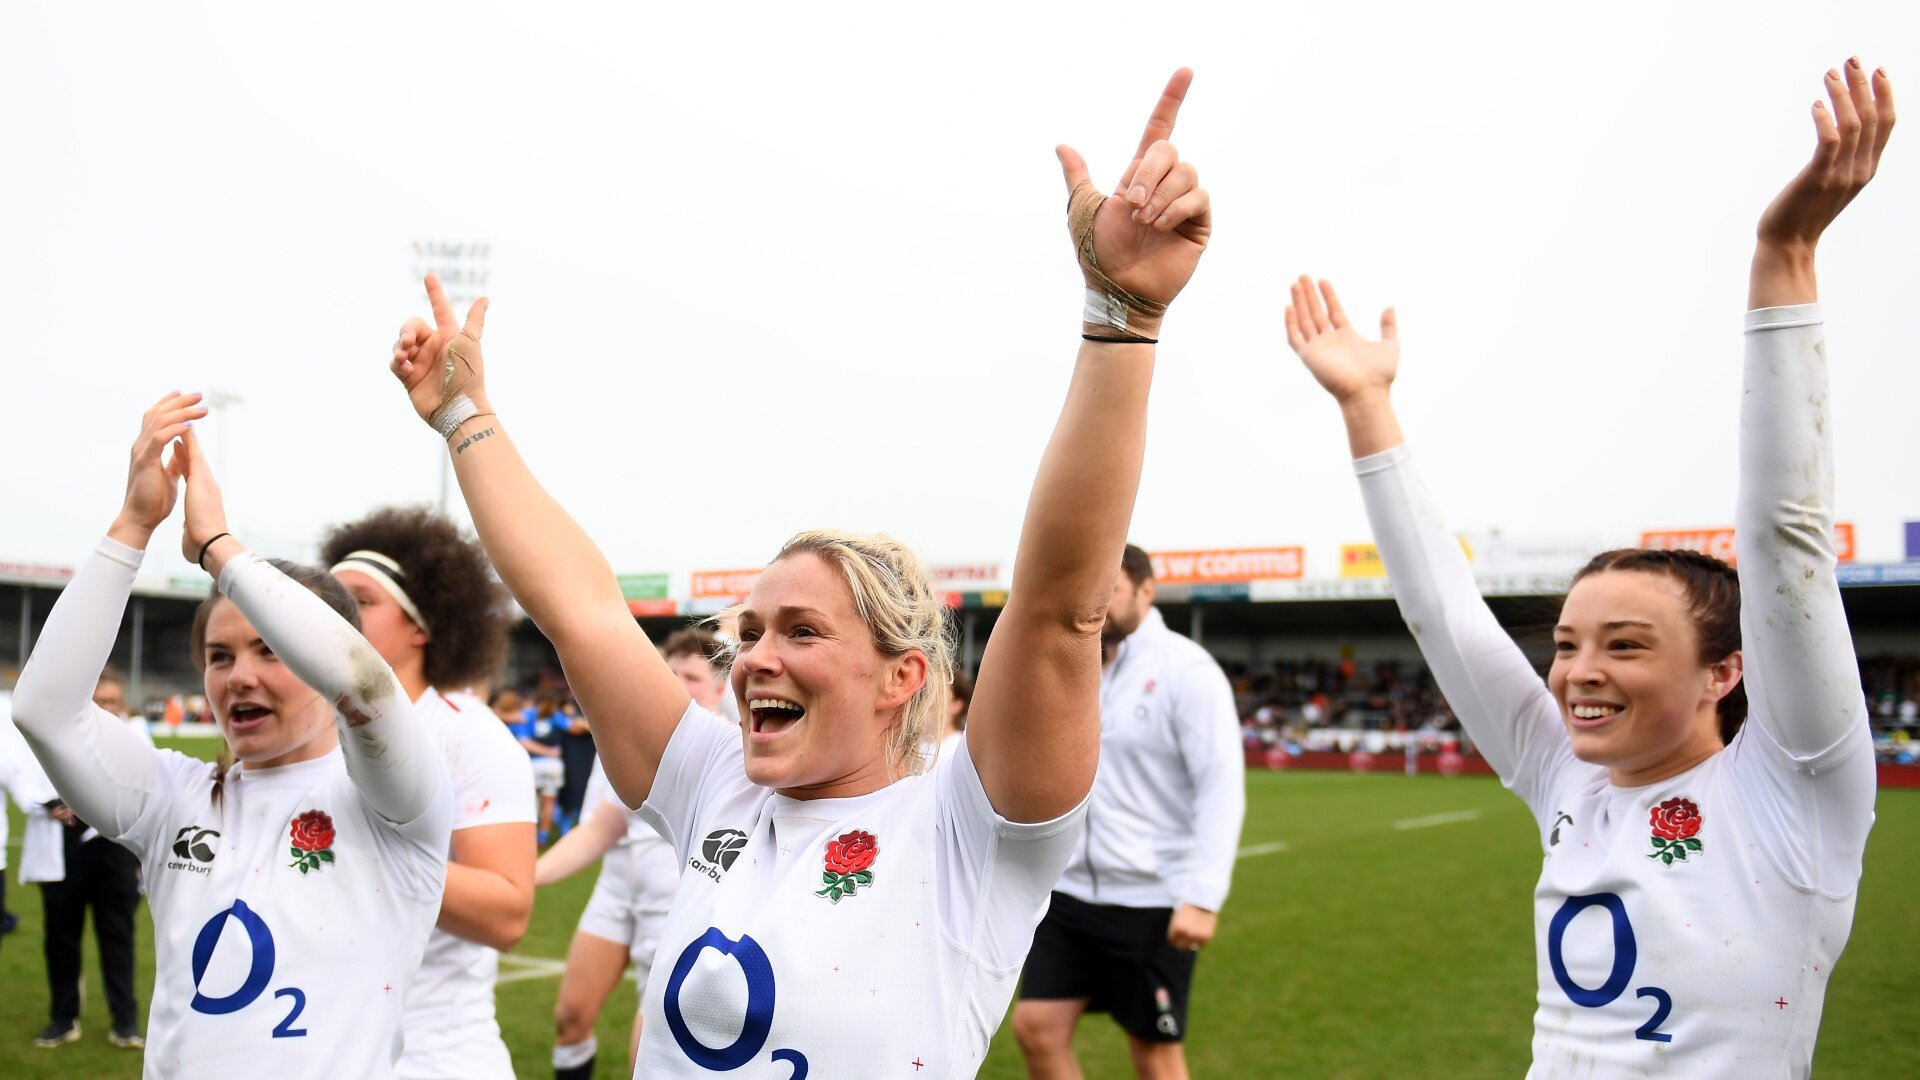 England sponsor pledges to equally fund men's and women's game as part of new 5-year deal